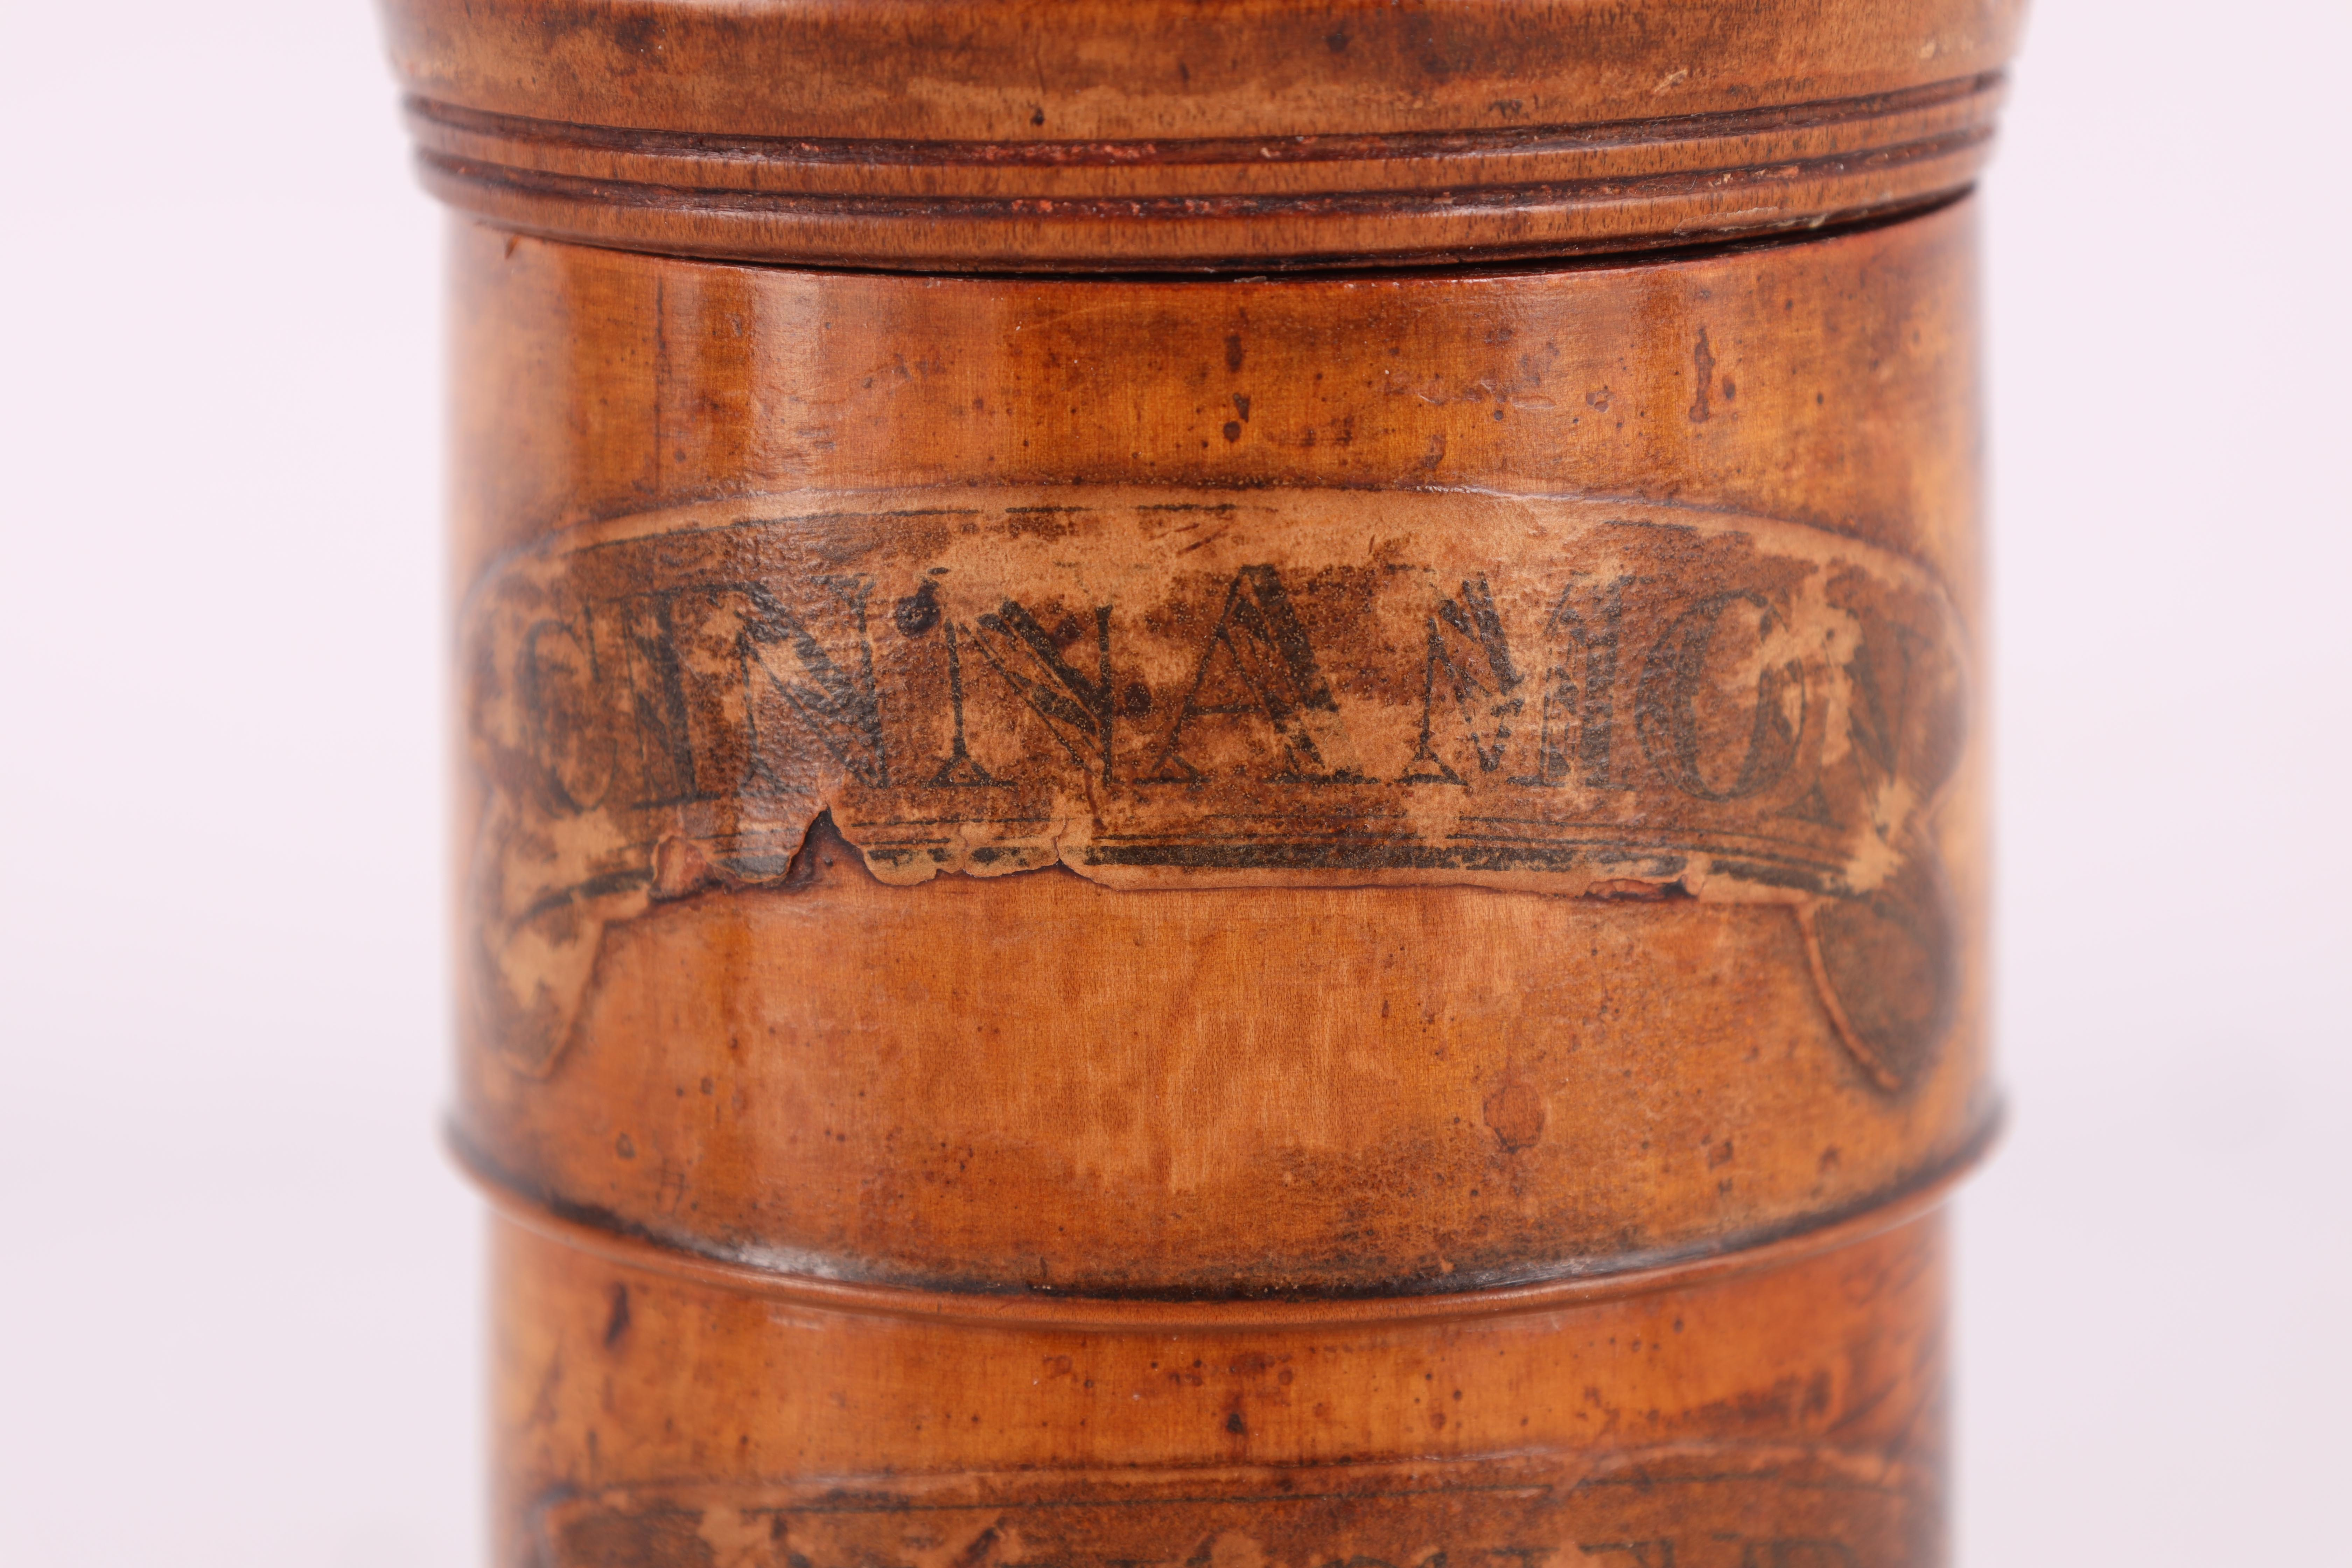 TWO EARLY 19TH CENTURY SYCAMORE TREEN SPICE TOWERS with original labels, the three stack 15cm - Image 10 of 13